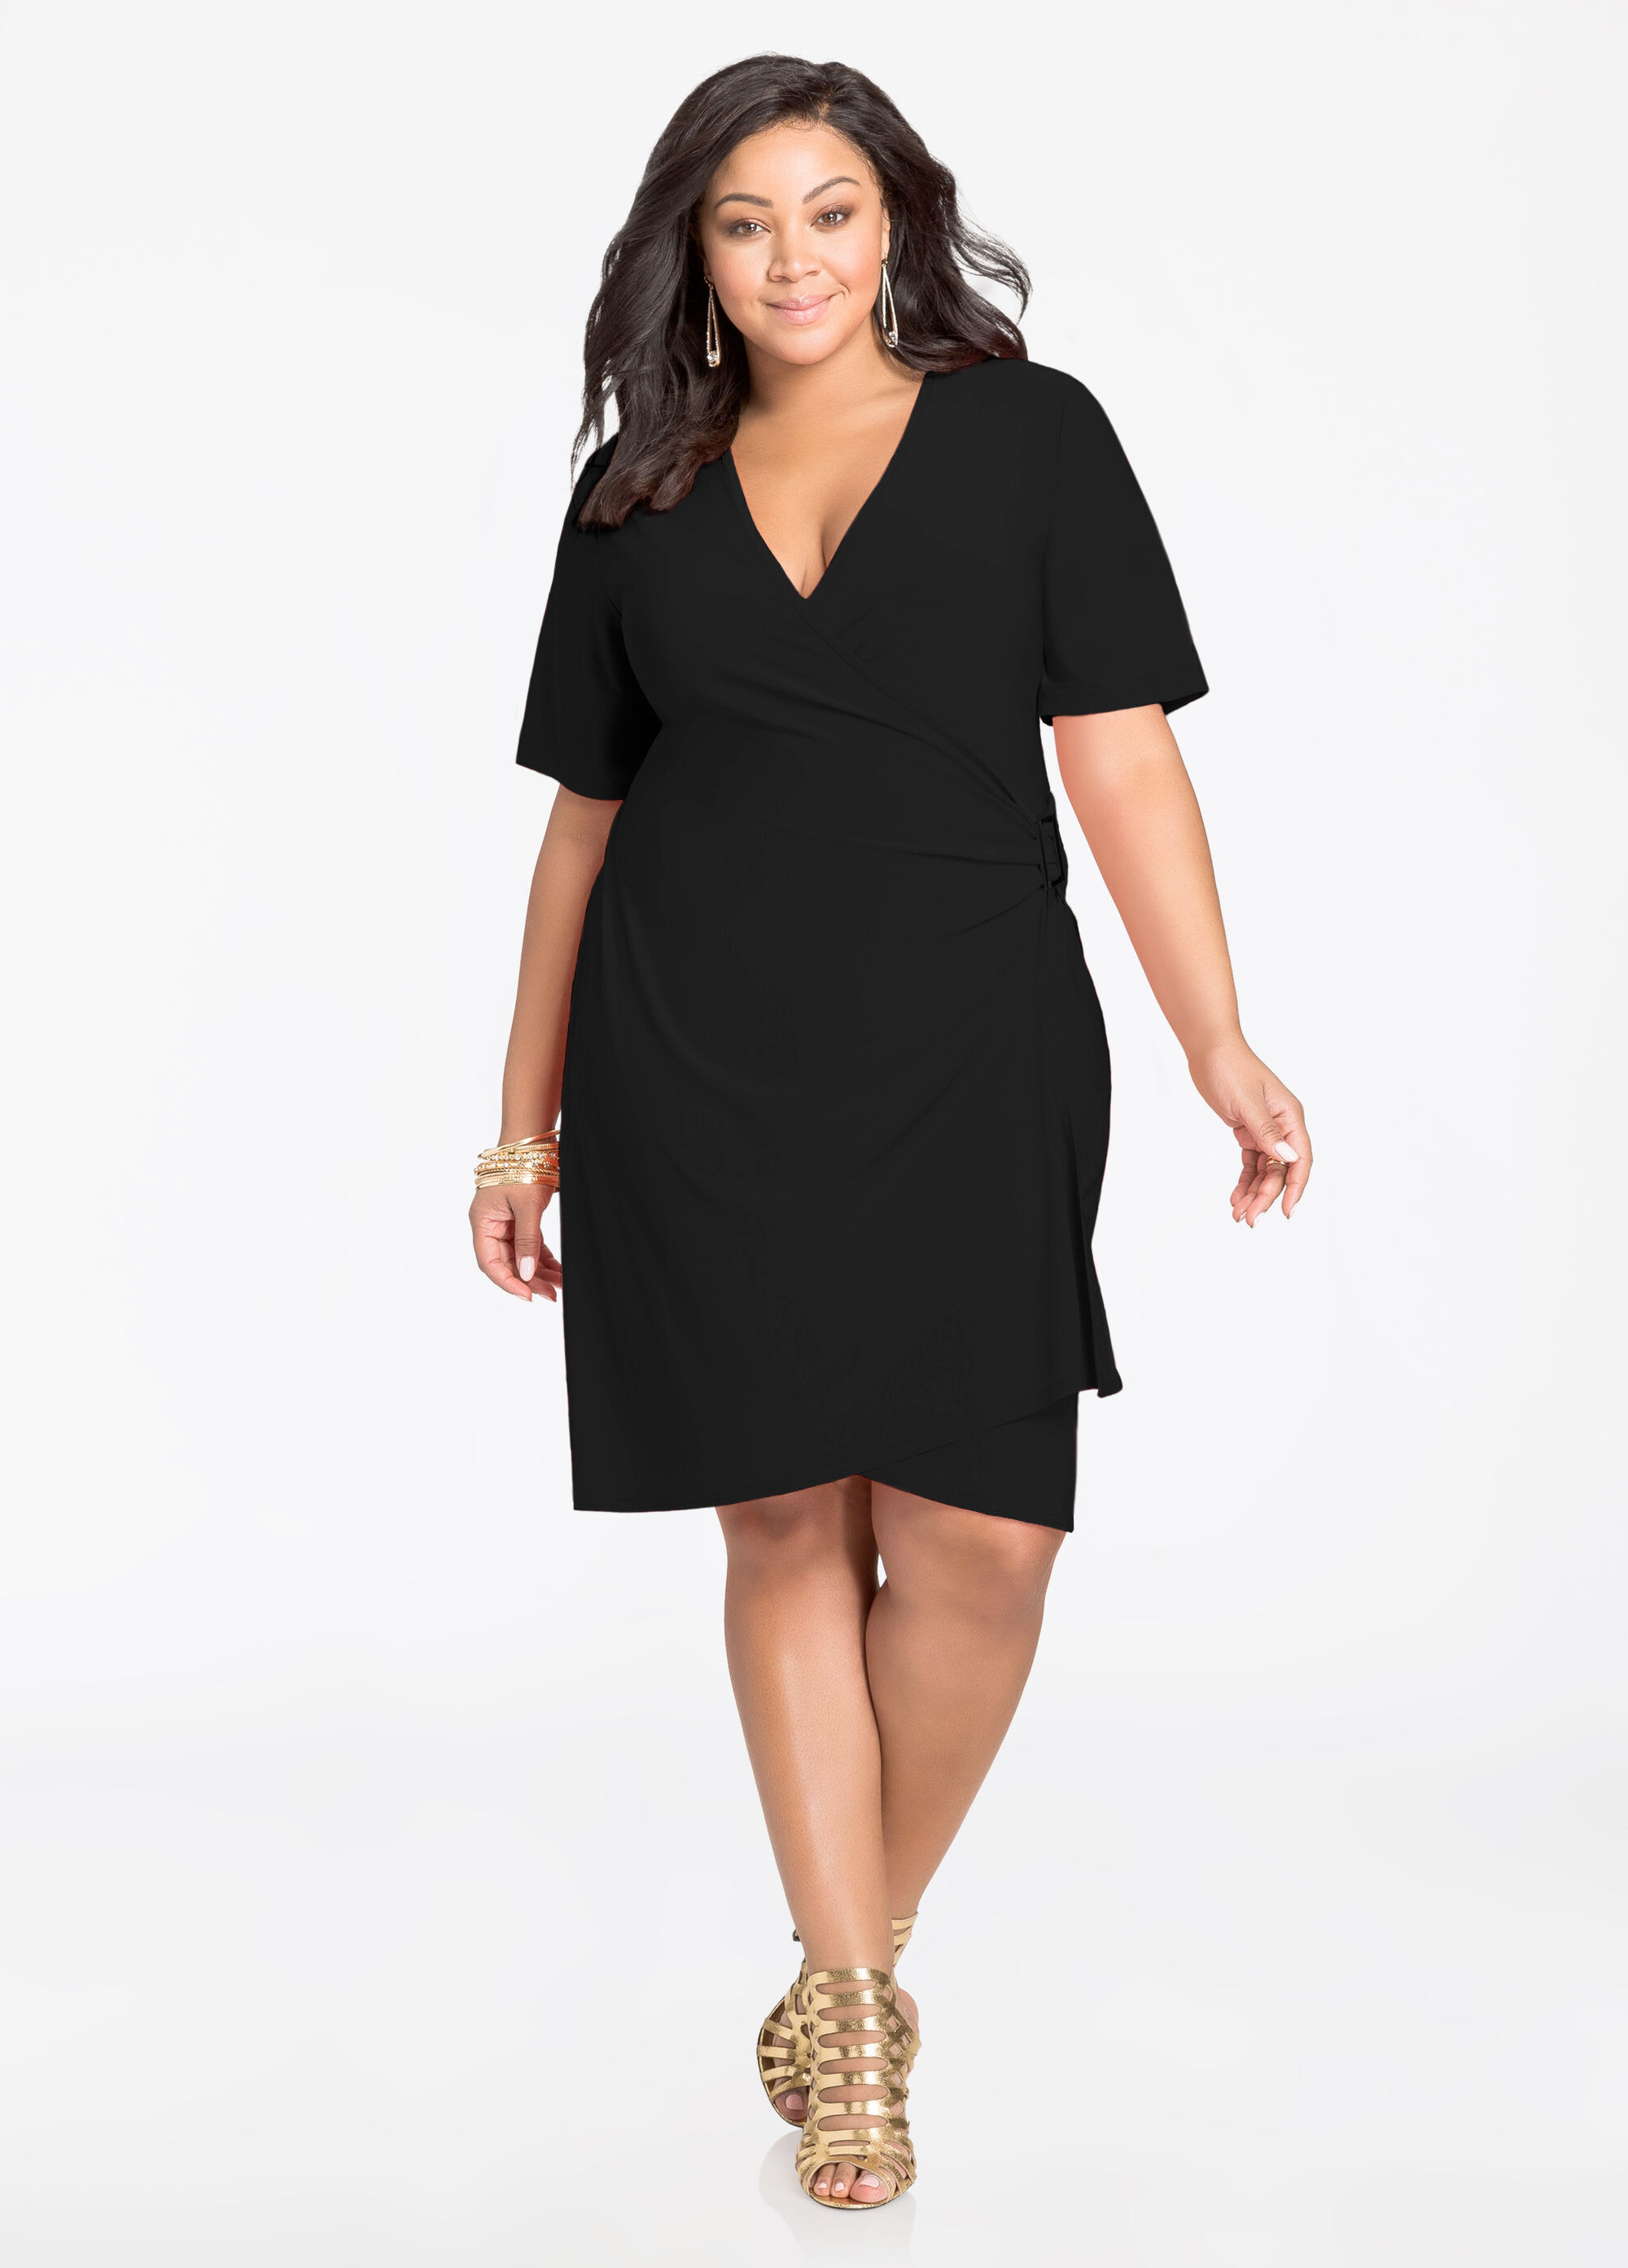 black plus size dress with sleeves choice image - dresses design ideas